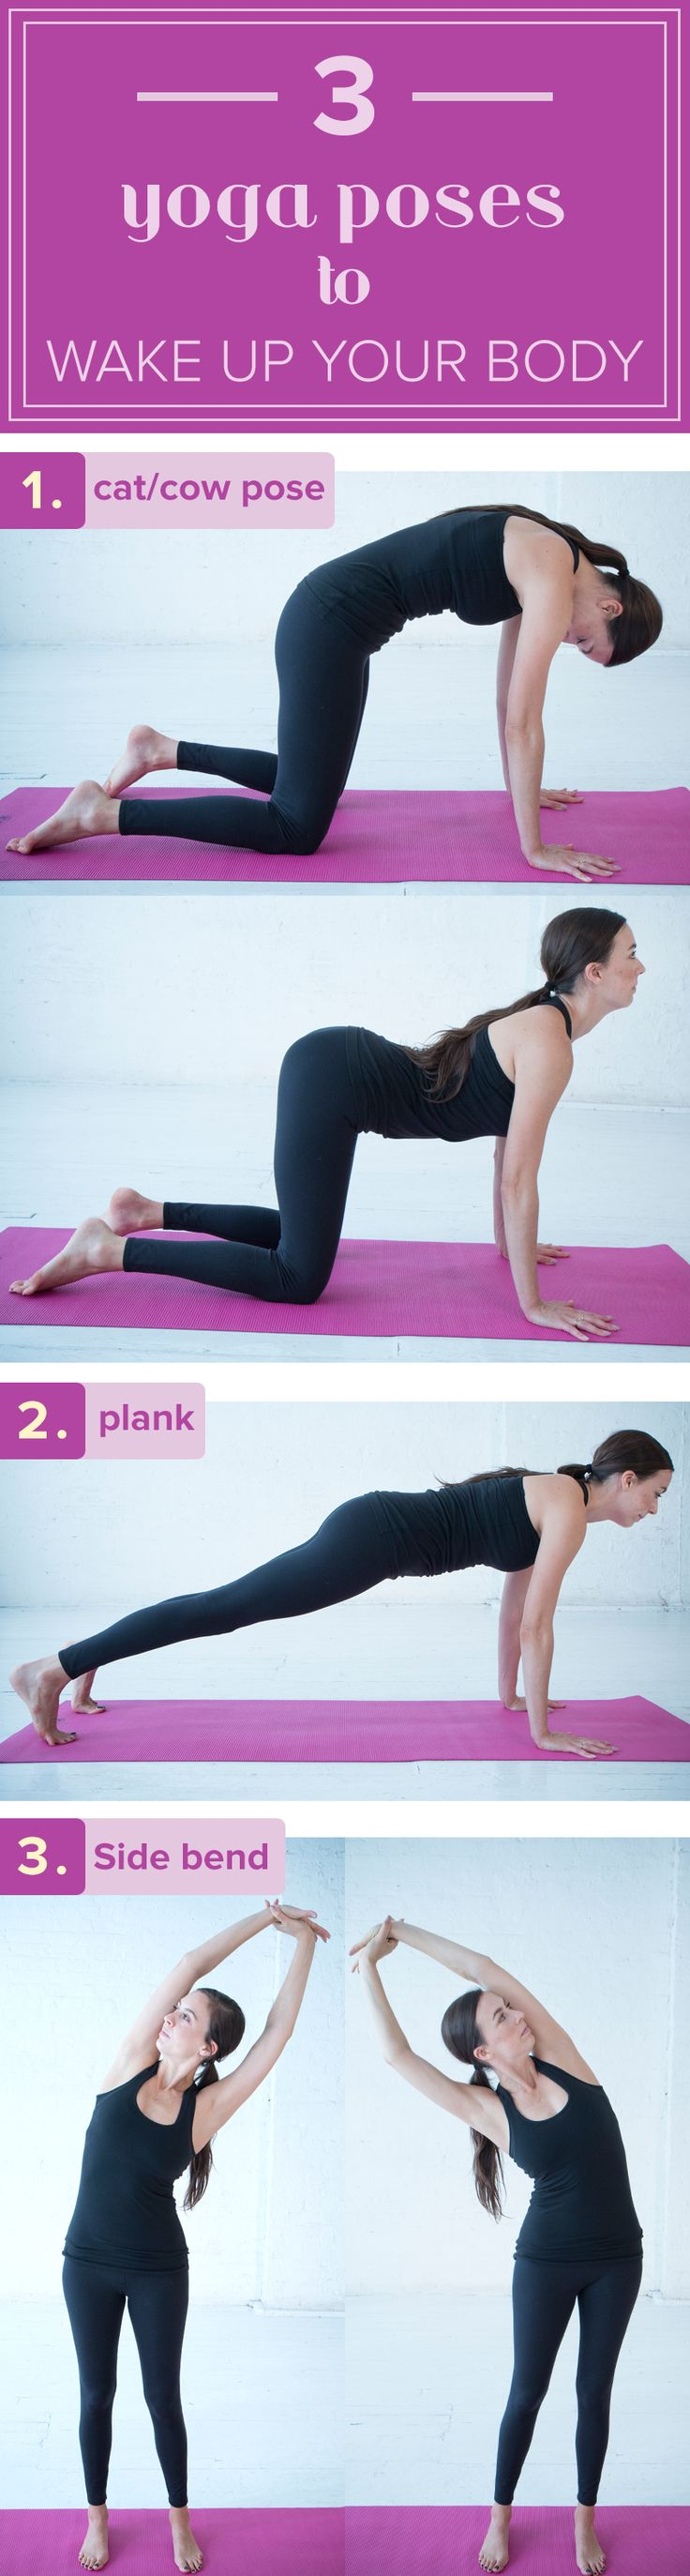 This yoge poses workout routine will wake up your body, Try this sequence of stretches for more energy.